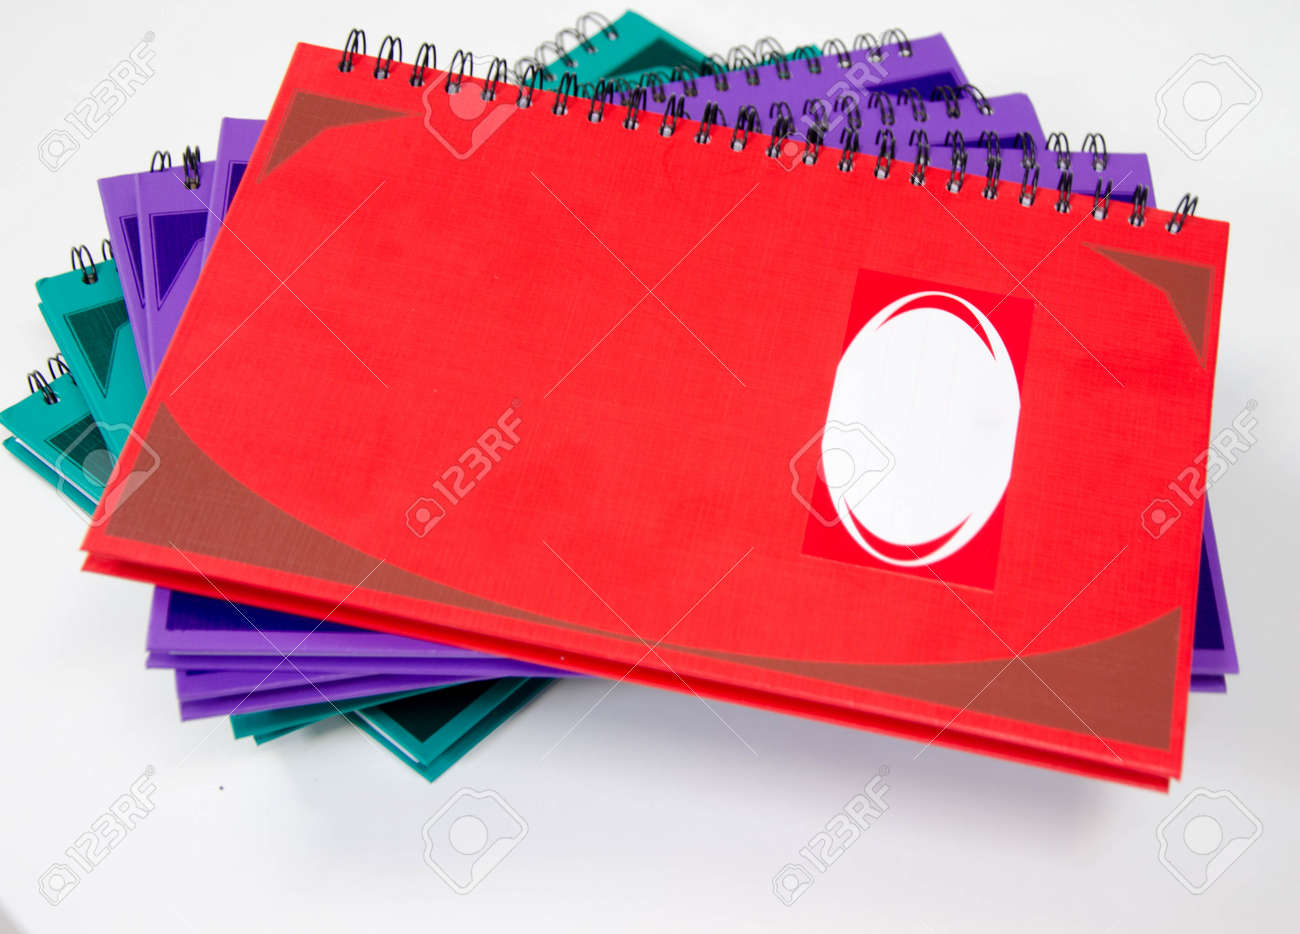 Color Note Ring Book On White Table Stock Photo, Picture And Royalty ...